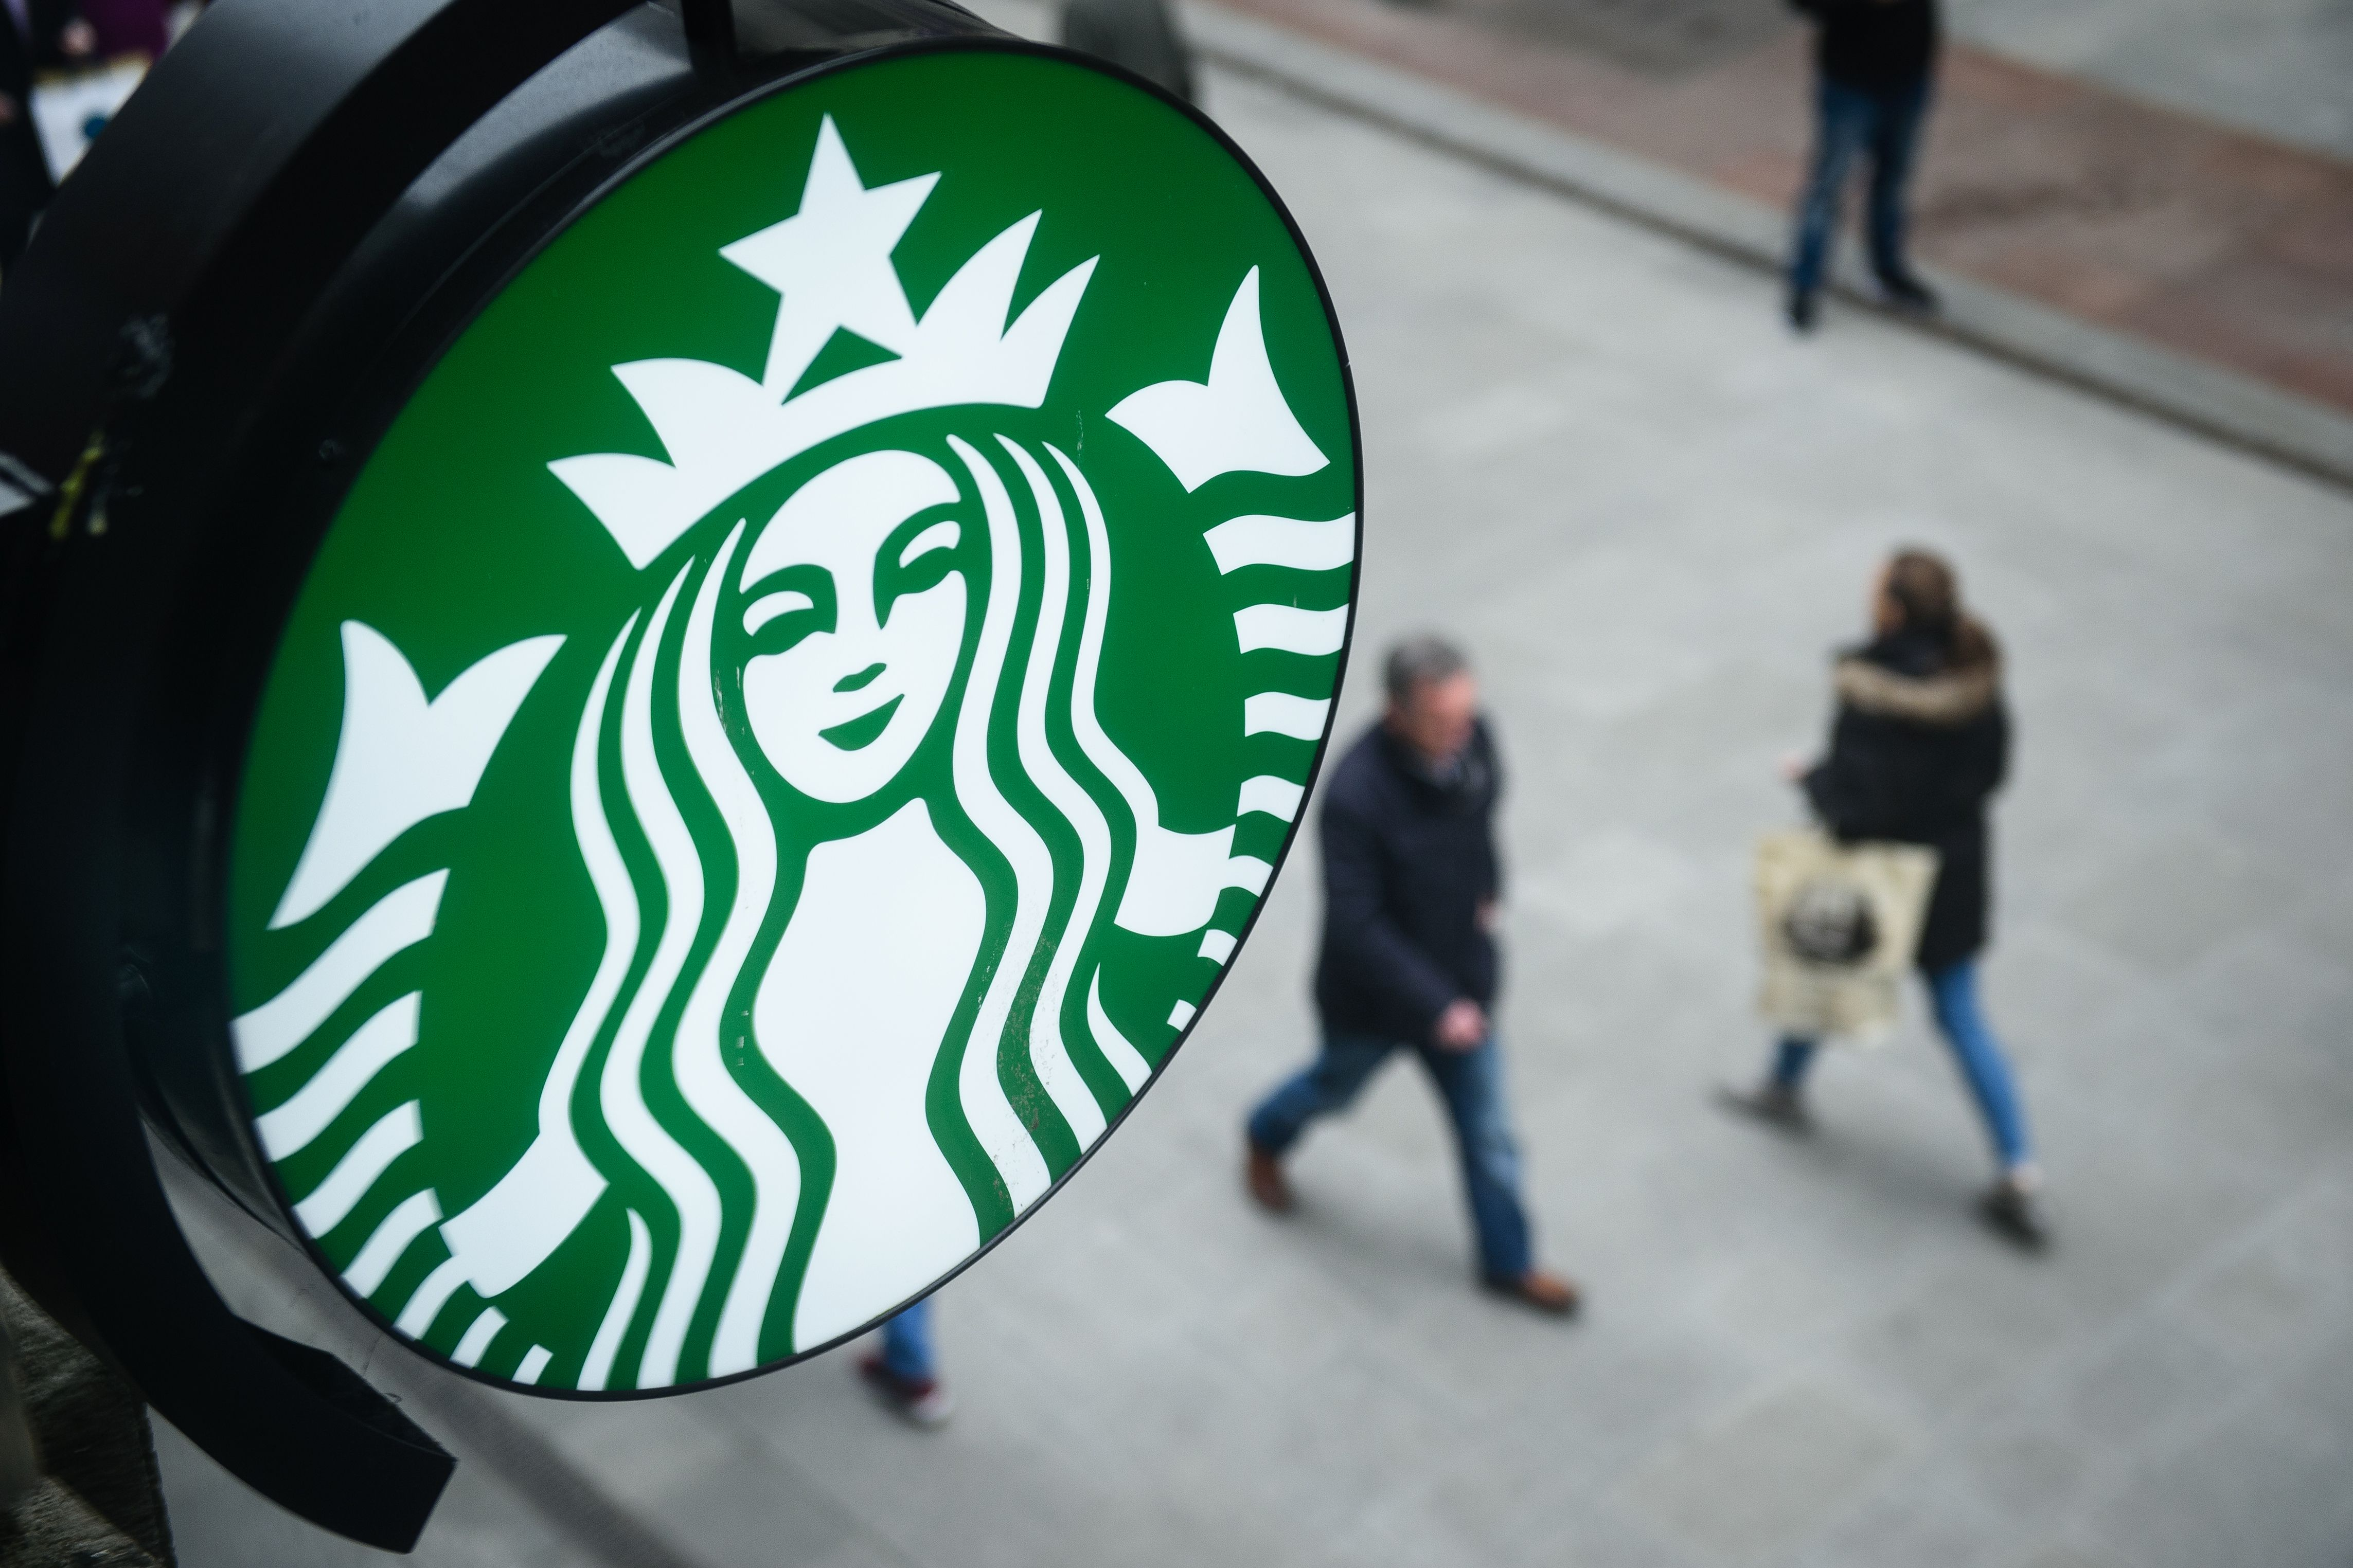 The Starbucks logo is pictured outside a branch of the coffee shop chain in Dublin, Ireland, on February 25, 2016.